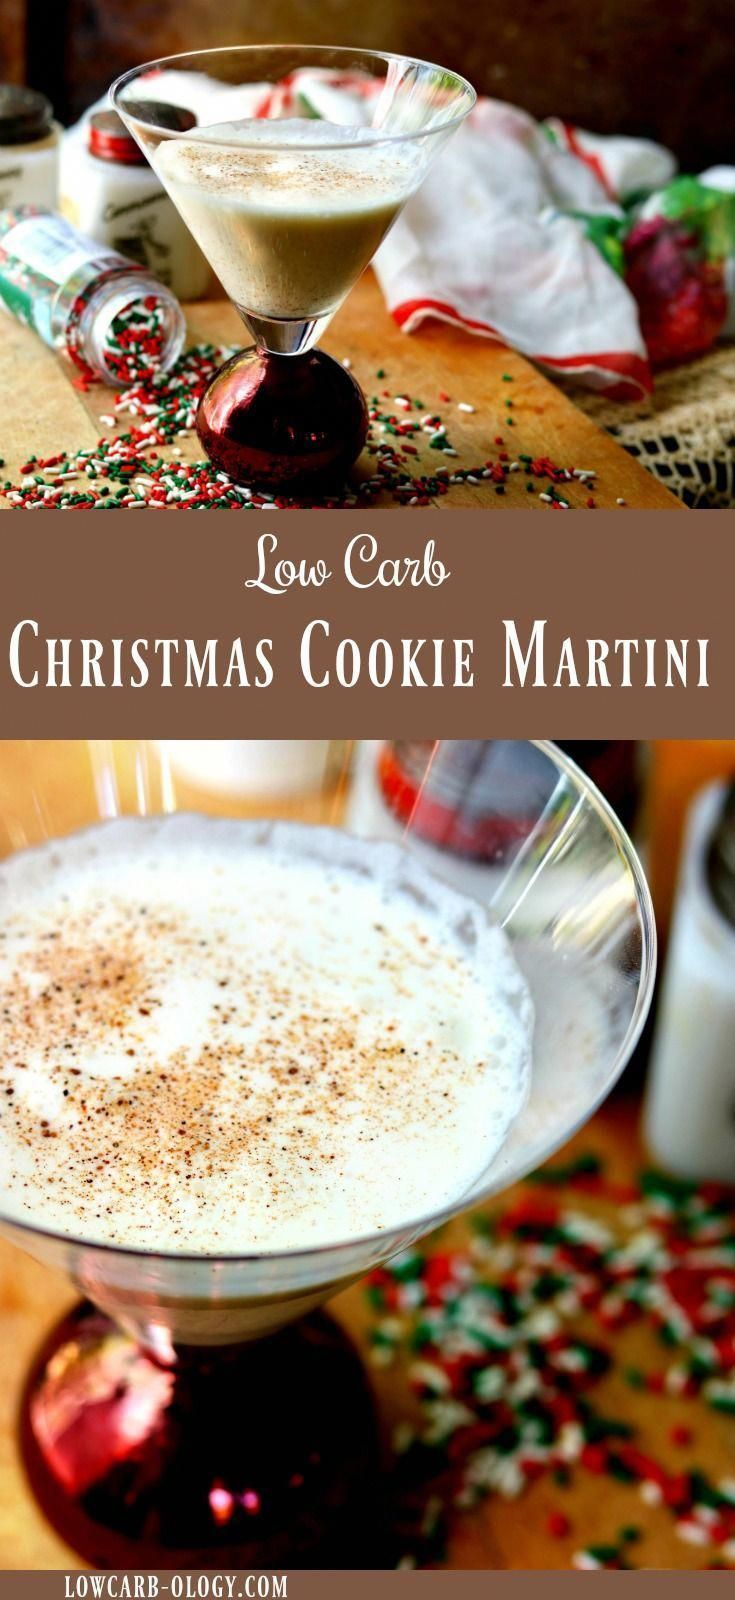 the holidays with this creamy, low carb, Christmas Cookie Martini recipe. It's just one carb and so easy to make! You'll have a gorgeous, signature holiday cocktail without going over your carb allotment. via @Marye atWelcome the holidays with this creamy, low carb, Christmas Cookie Martini recipe. It's just one carb and so easy to make! You'll ...